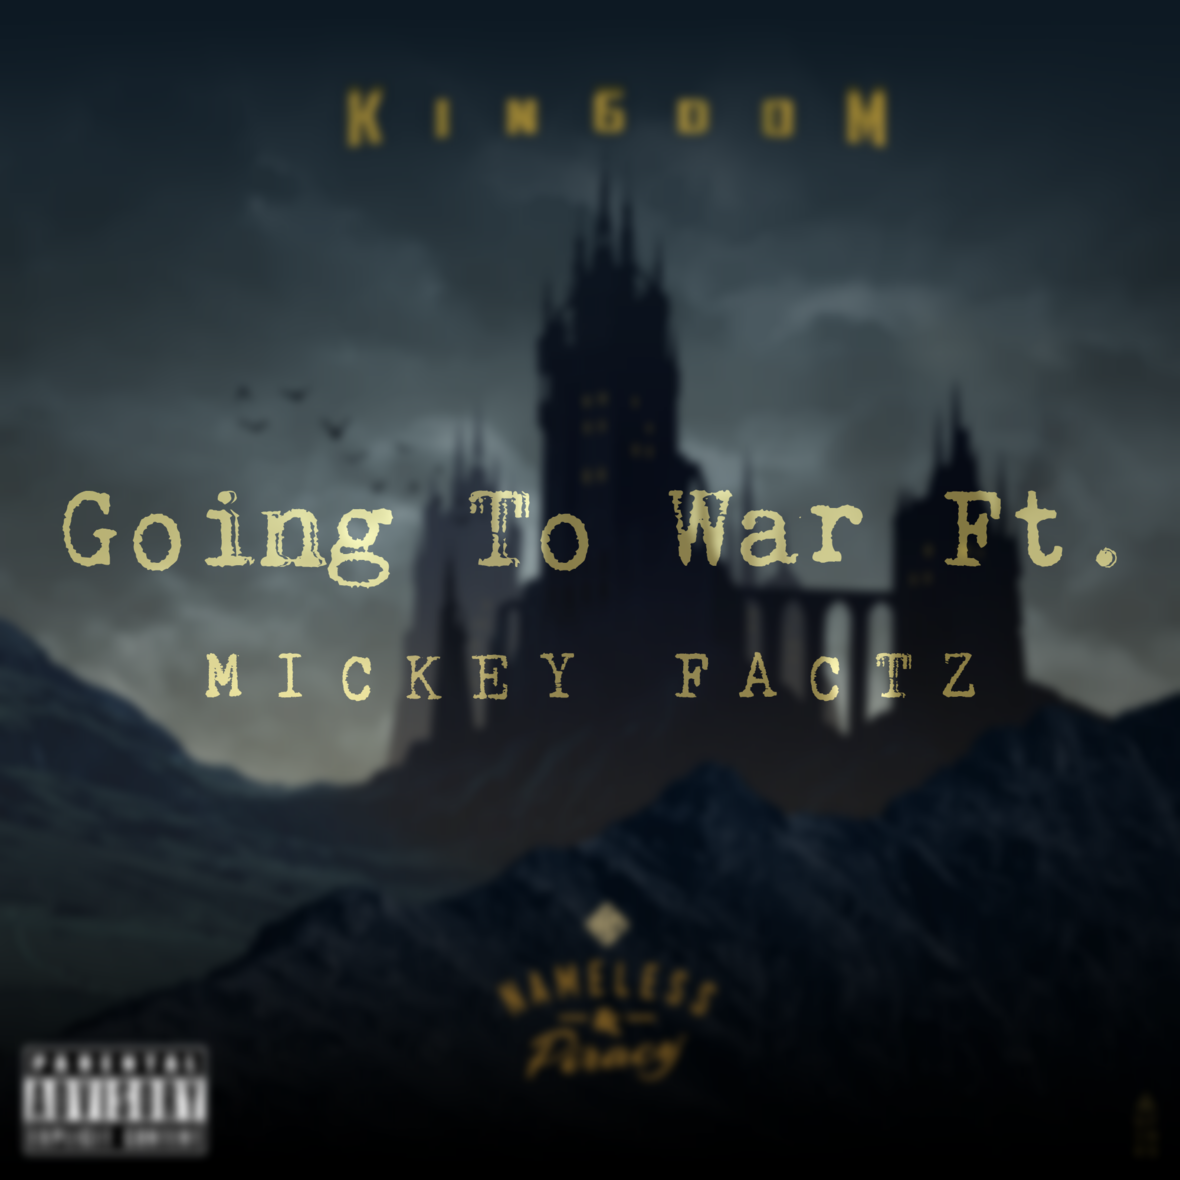 Kin6Dom - Going To War (ft. Mickey Factz) [audio]